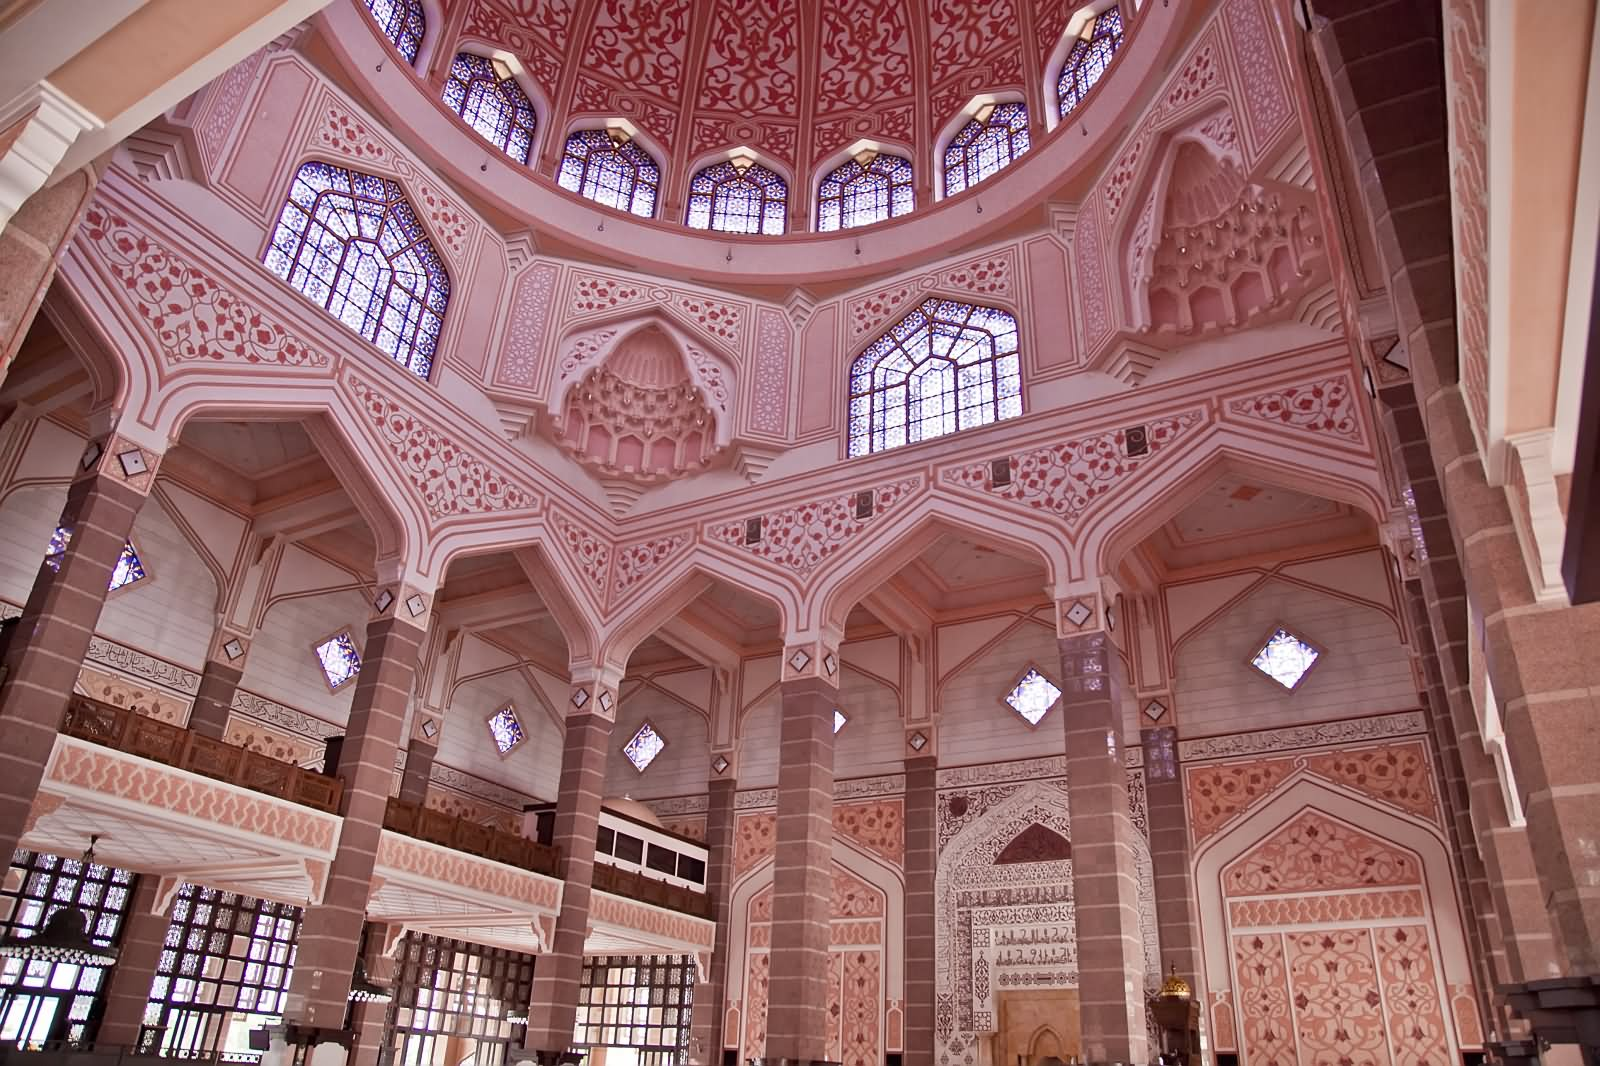 Incredible Dome Inside View Of Putra Mosque